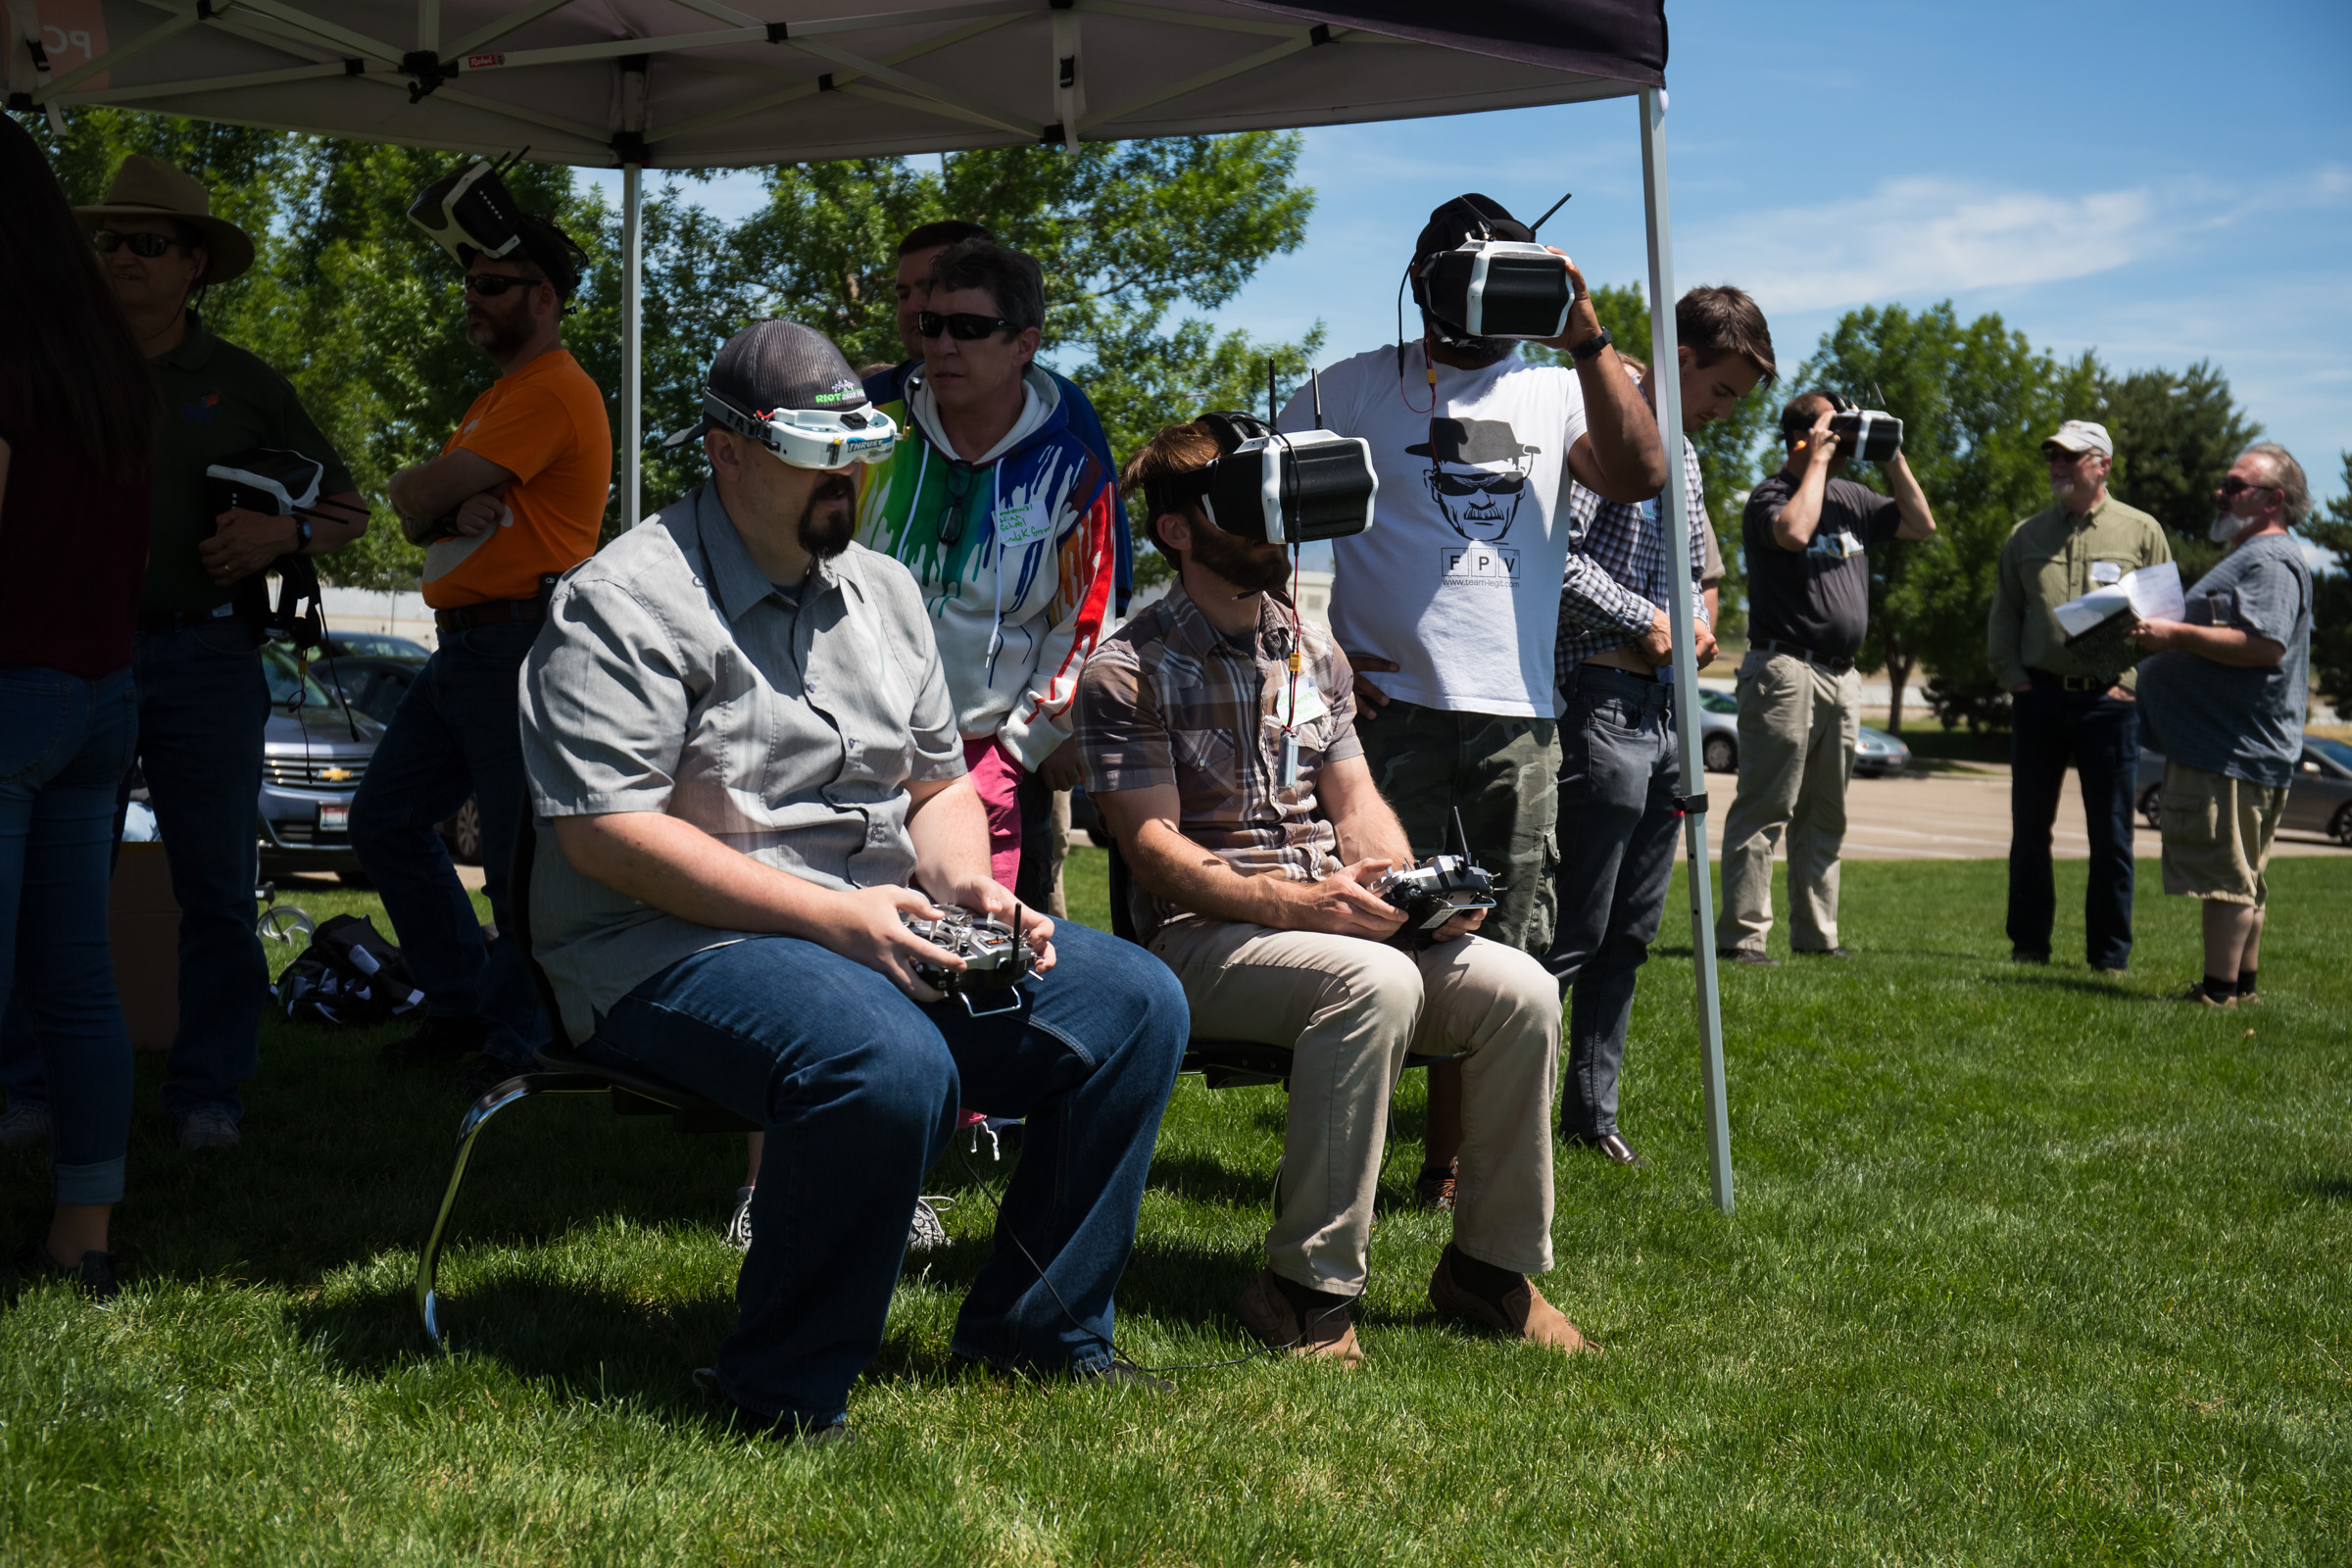 BOISE, Idaho (June 14, 2017) — Teachers and librarians from 23 sites throughout the Gem State attended drone flight school June 13-14, 2017, in the Treasure Valley. The Idaho STEM Action Center awarded more than $147,000 in grants to equip and train participants with Thrust-UAV drones from Idaho-based PCS Edventures and FPV goggles that allow first-person view piloting. (Photo by Otto Kitsinger for Idaho STEM Action Center)